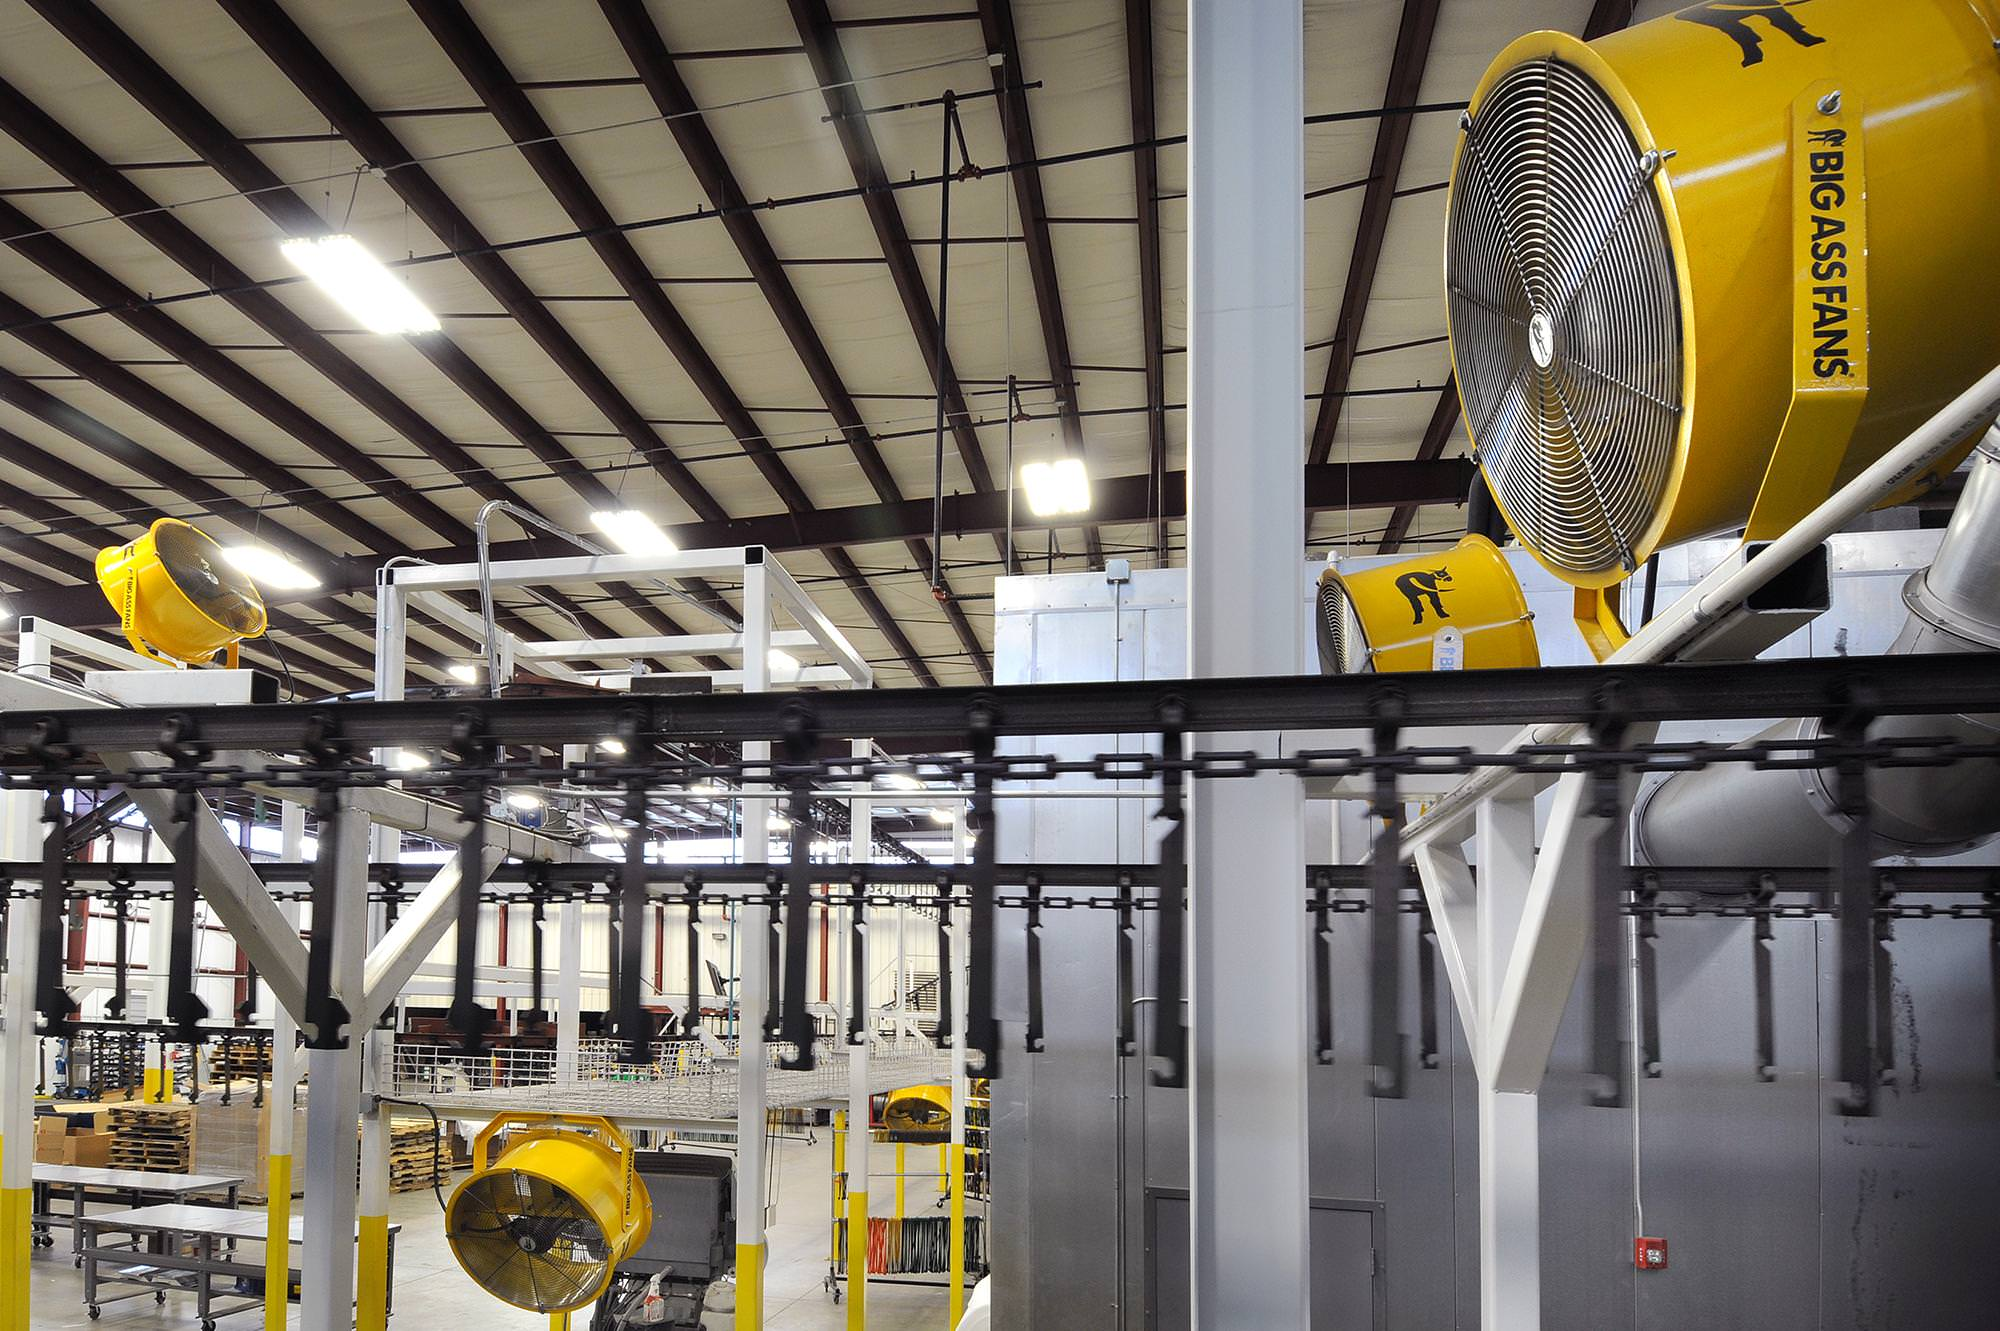 Industrial Hvls Ceiling Fans For Manufacturing Facilities